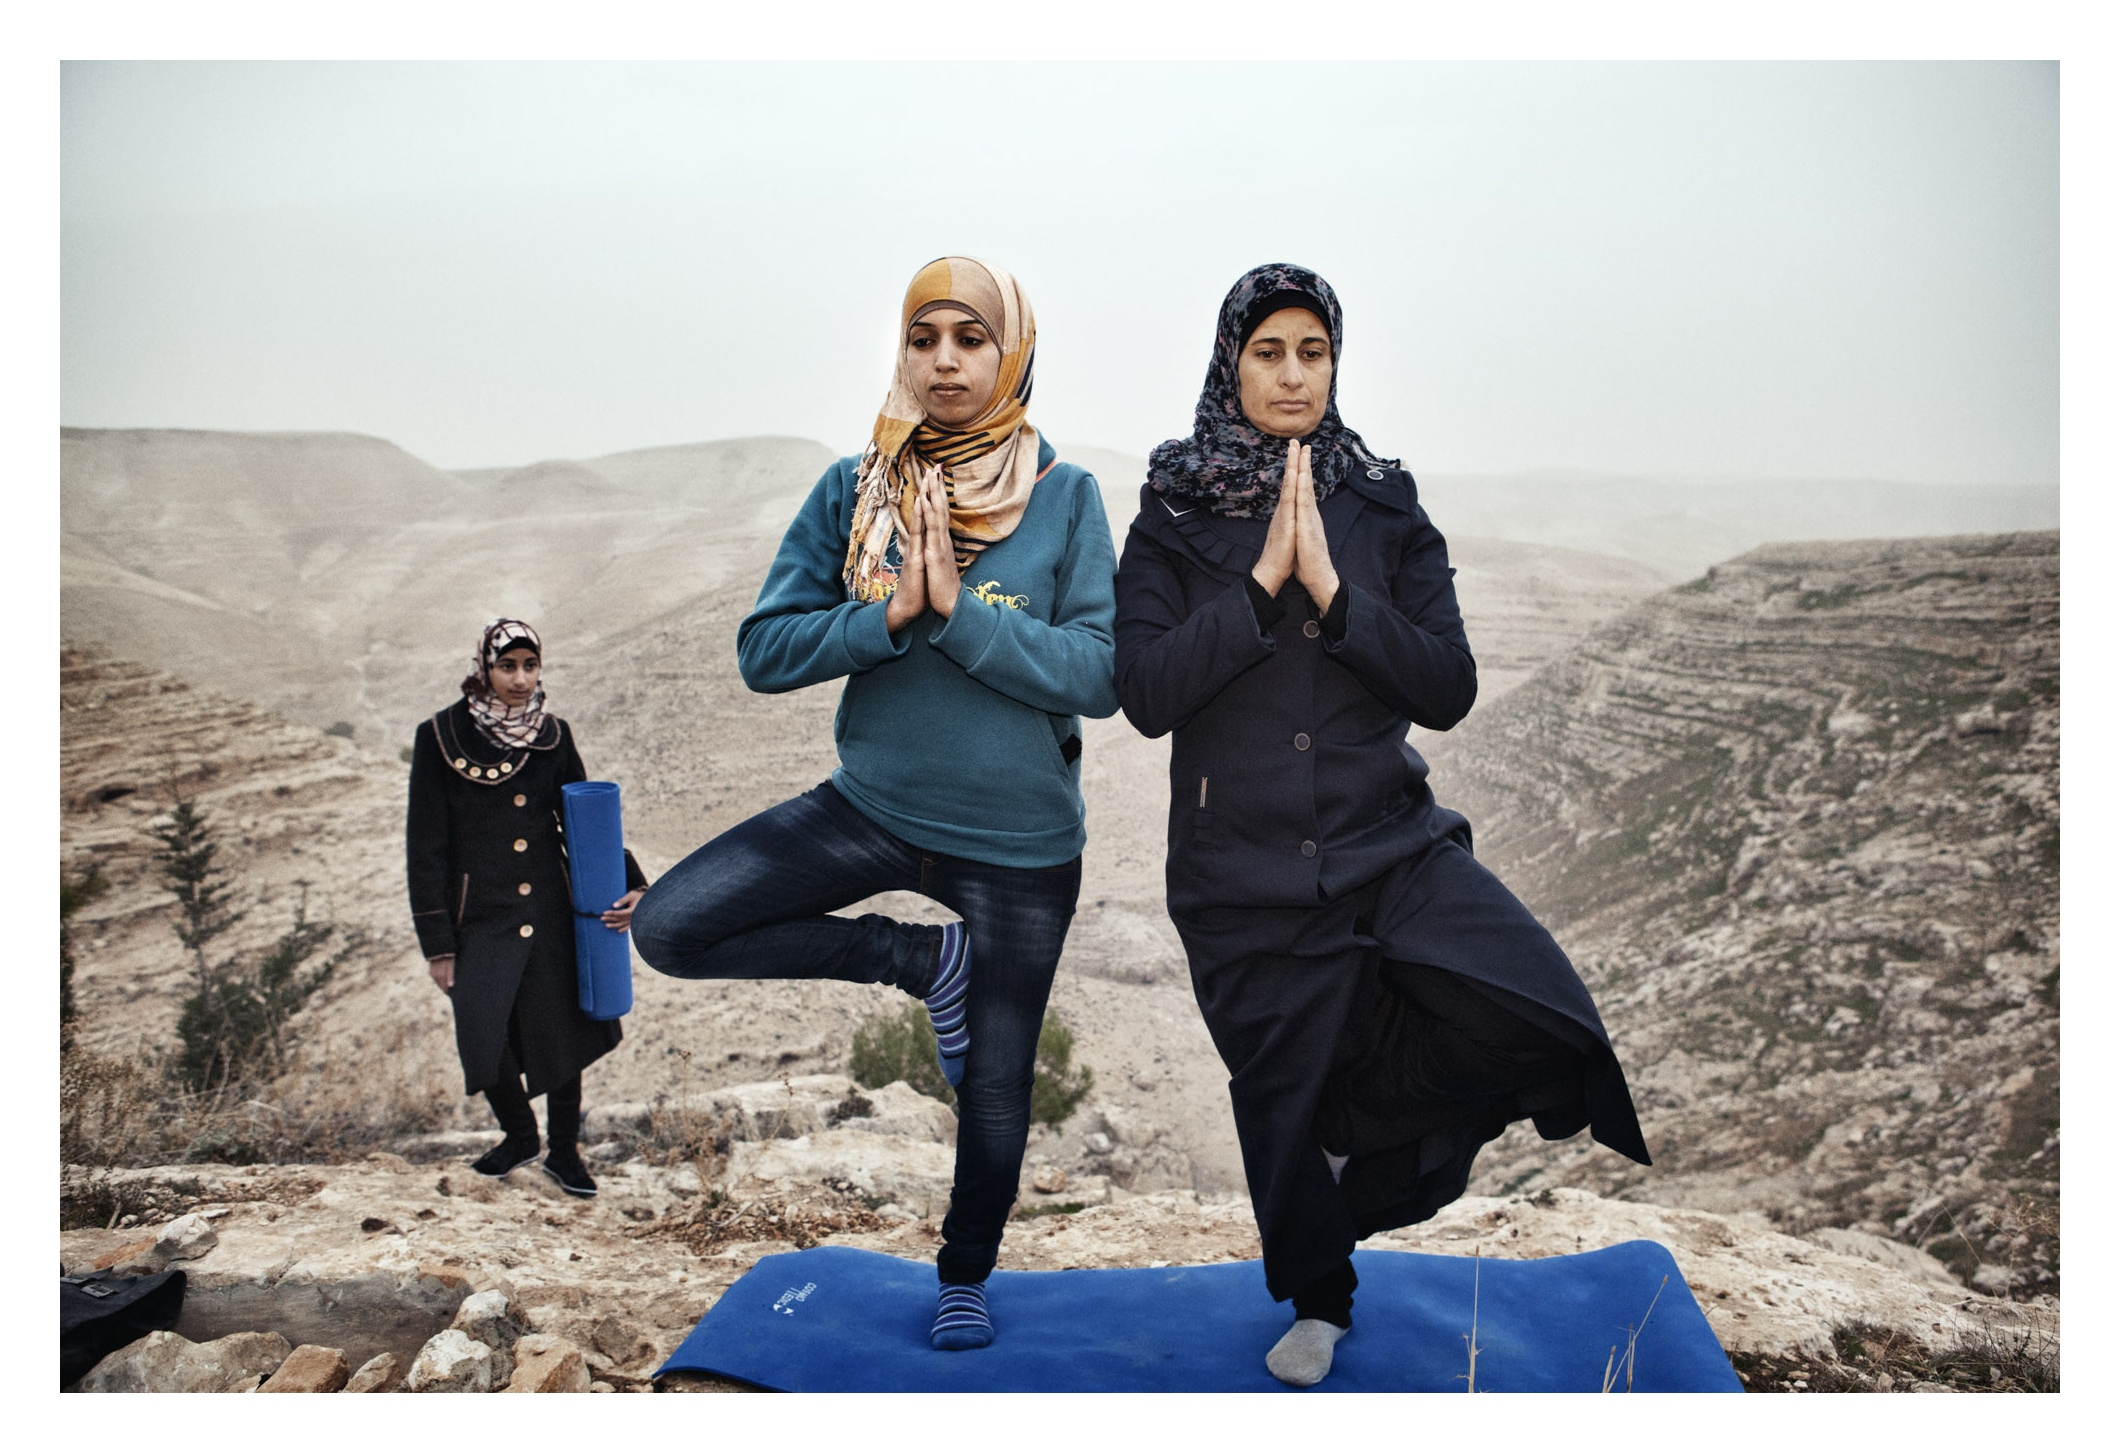 Occupied Palestinian Territories, West Bank, Za'tara, 06 January 2013Hayat (left) teaches yoga to the residents of her village, Zataara,  on the outskirts of Bethlehem in the West Bank. The women are increasing in number each week.